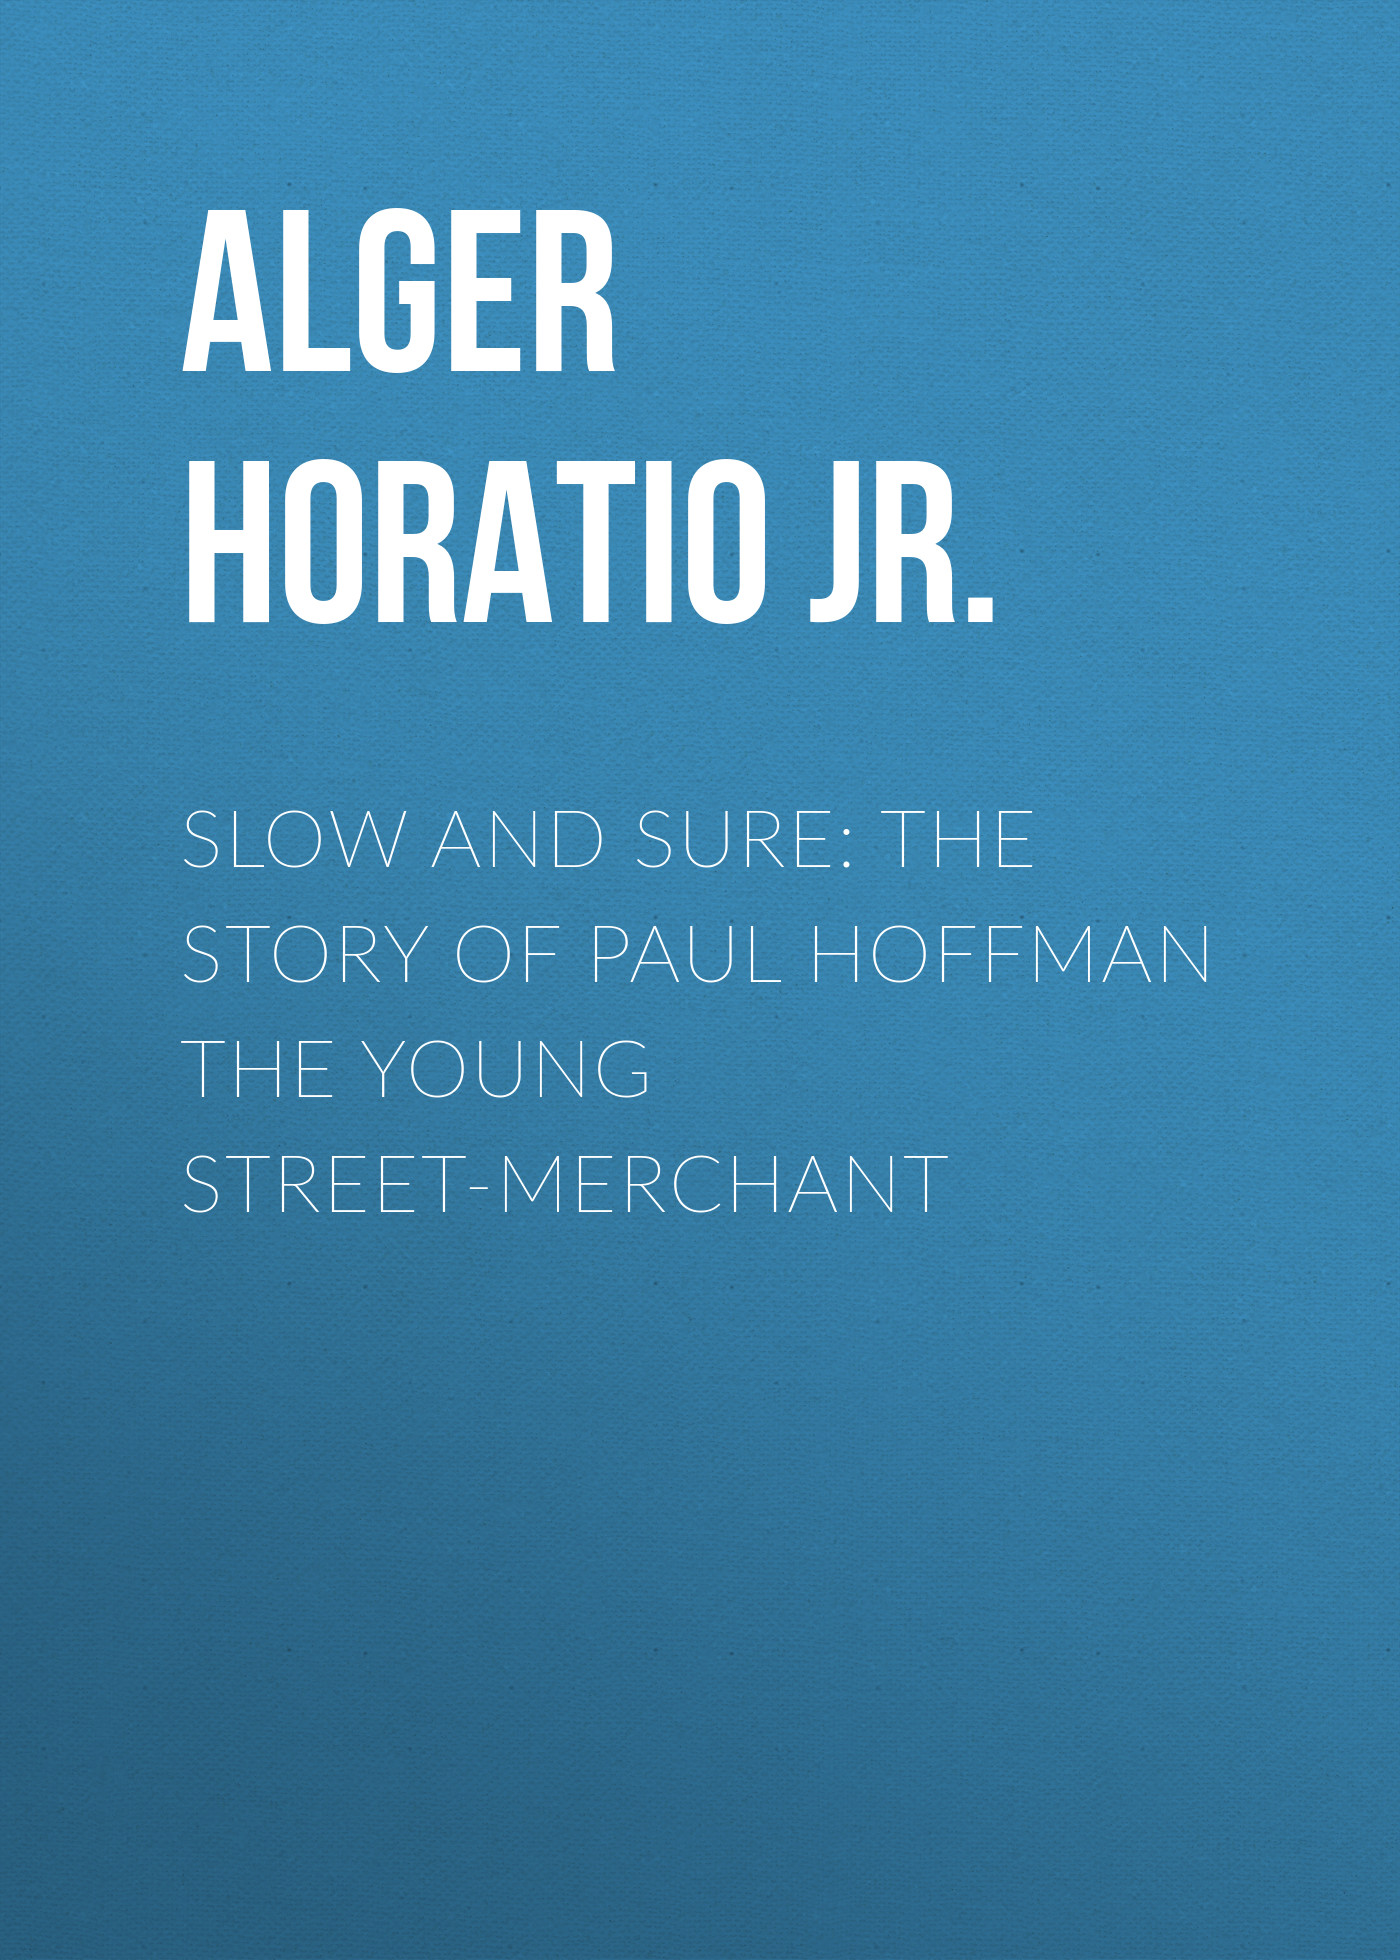 лучшая цена Alger Horatio Jr. Slow and Sure: The Story of Paul Hoffman the Young Street-Merchant